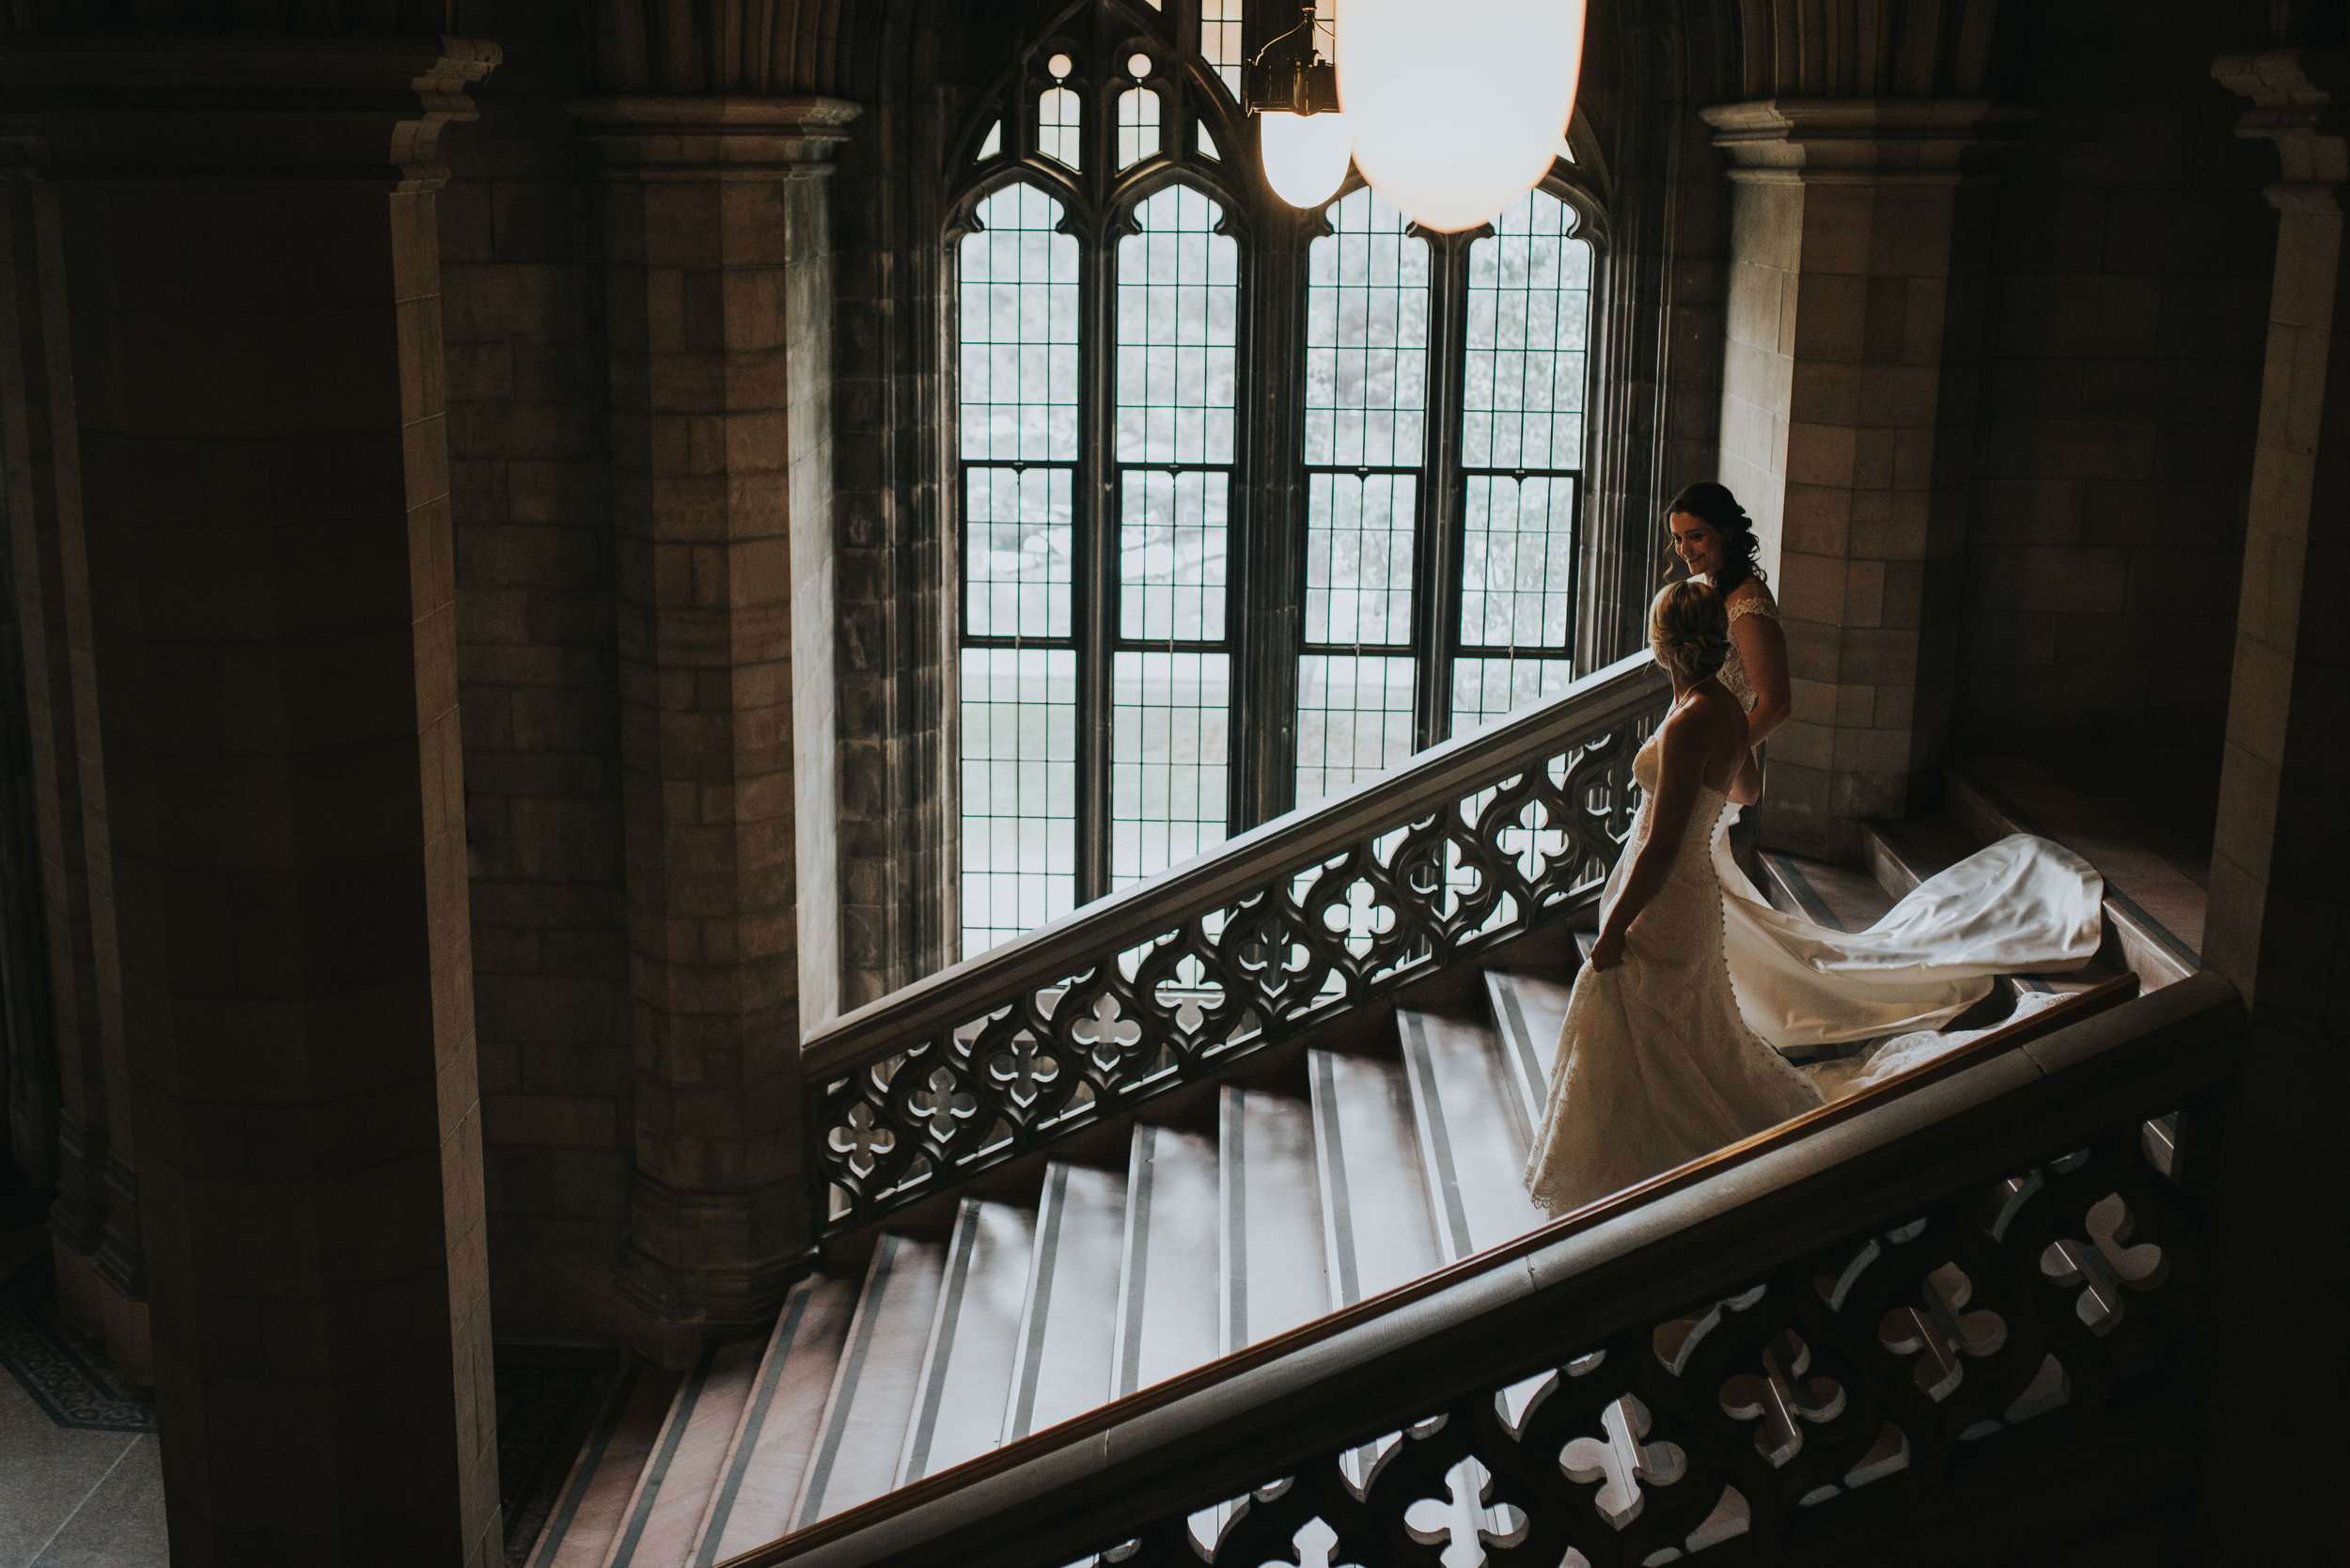 brides-walking-down-staircase-knox-college-toronto-same-sex-wedding-willow-and-birch-photography-documentary-wedding-photographers.jpg